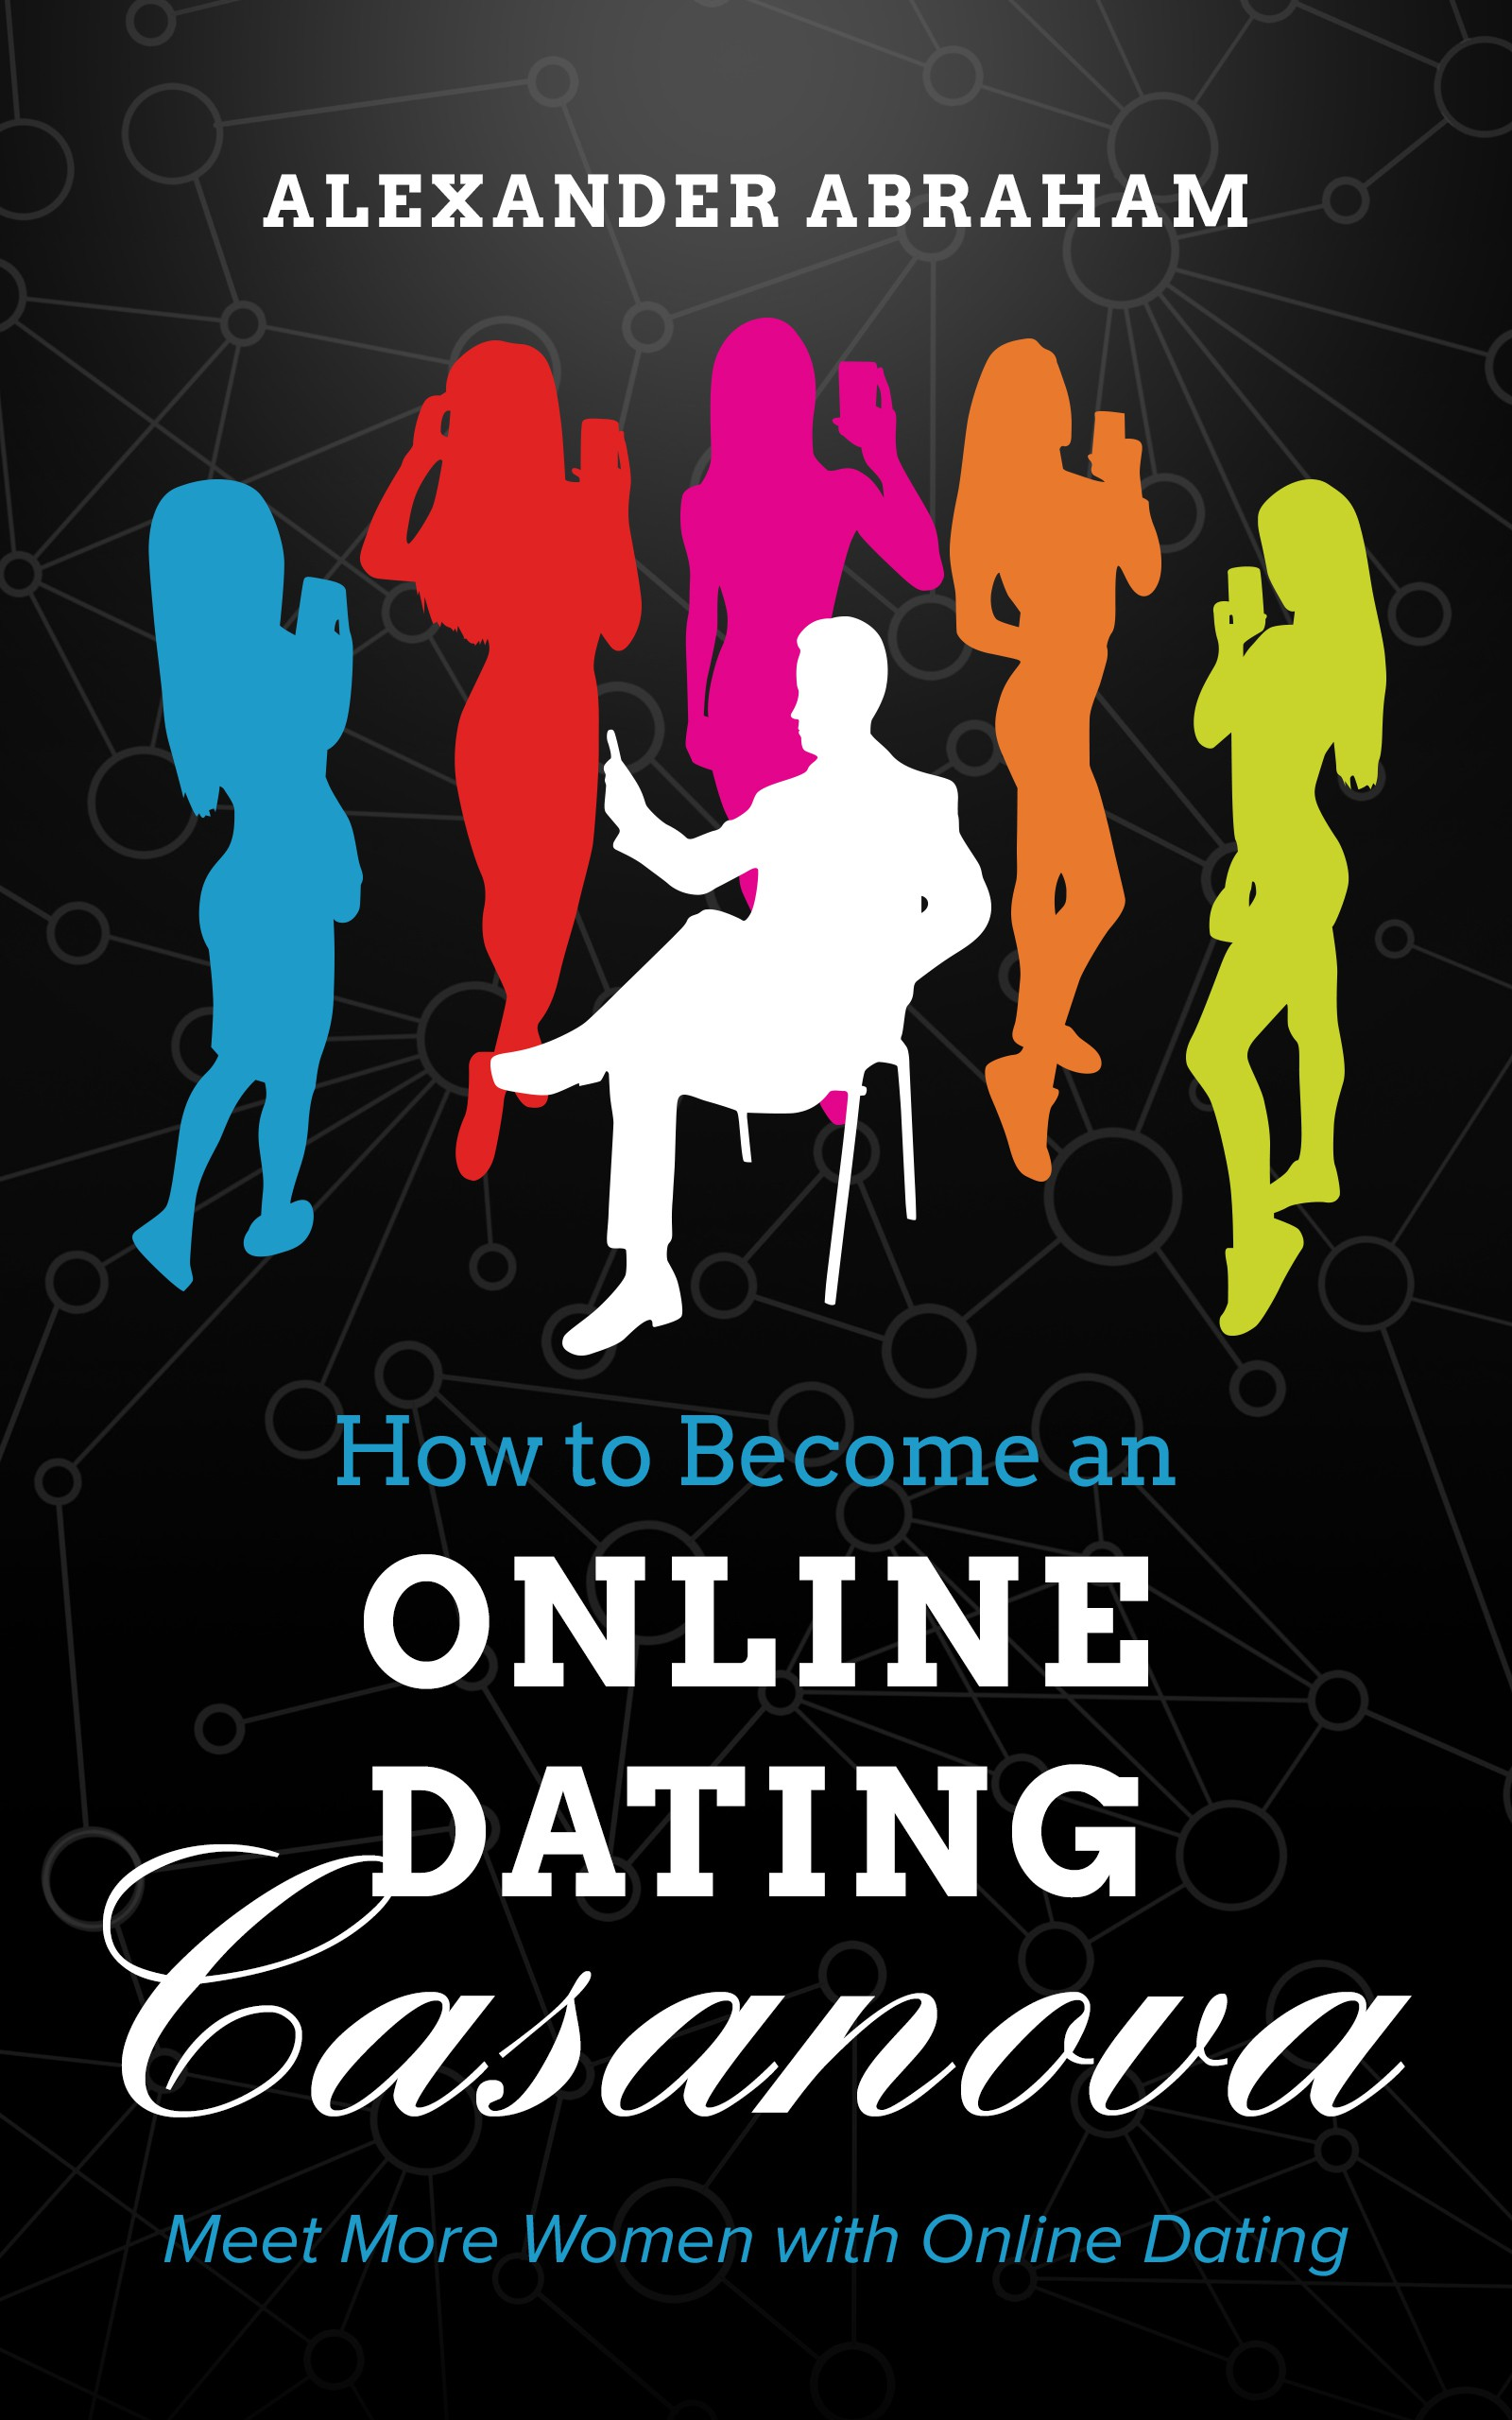 """Whip up a neat, eye-grabbing cover for Online Dating Casanova """"how-to"""" book"""